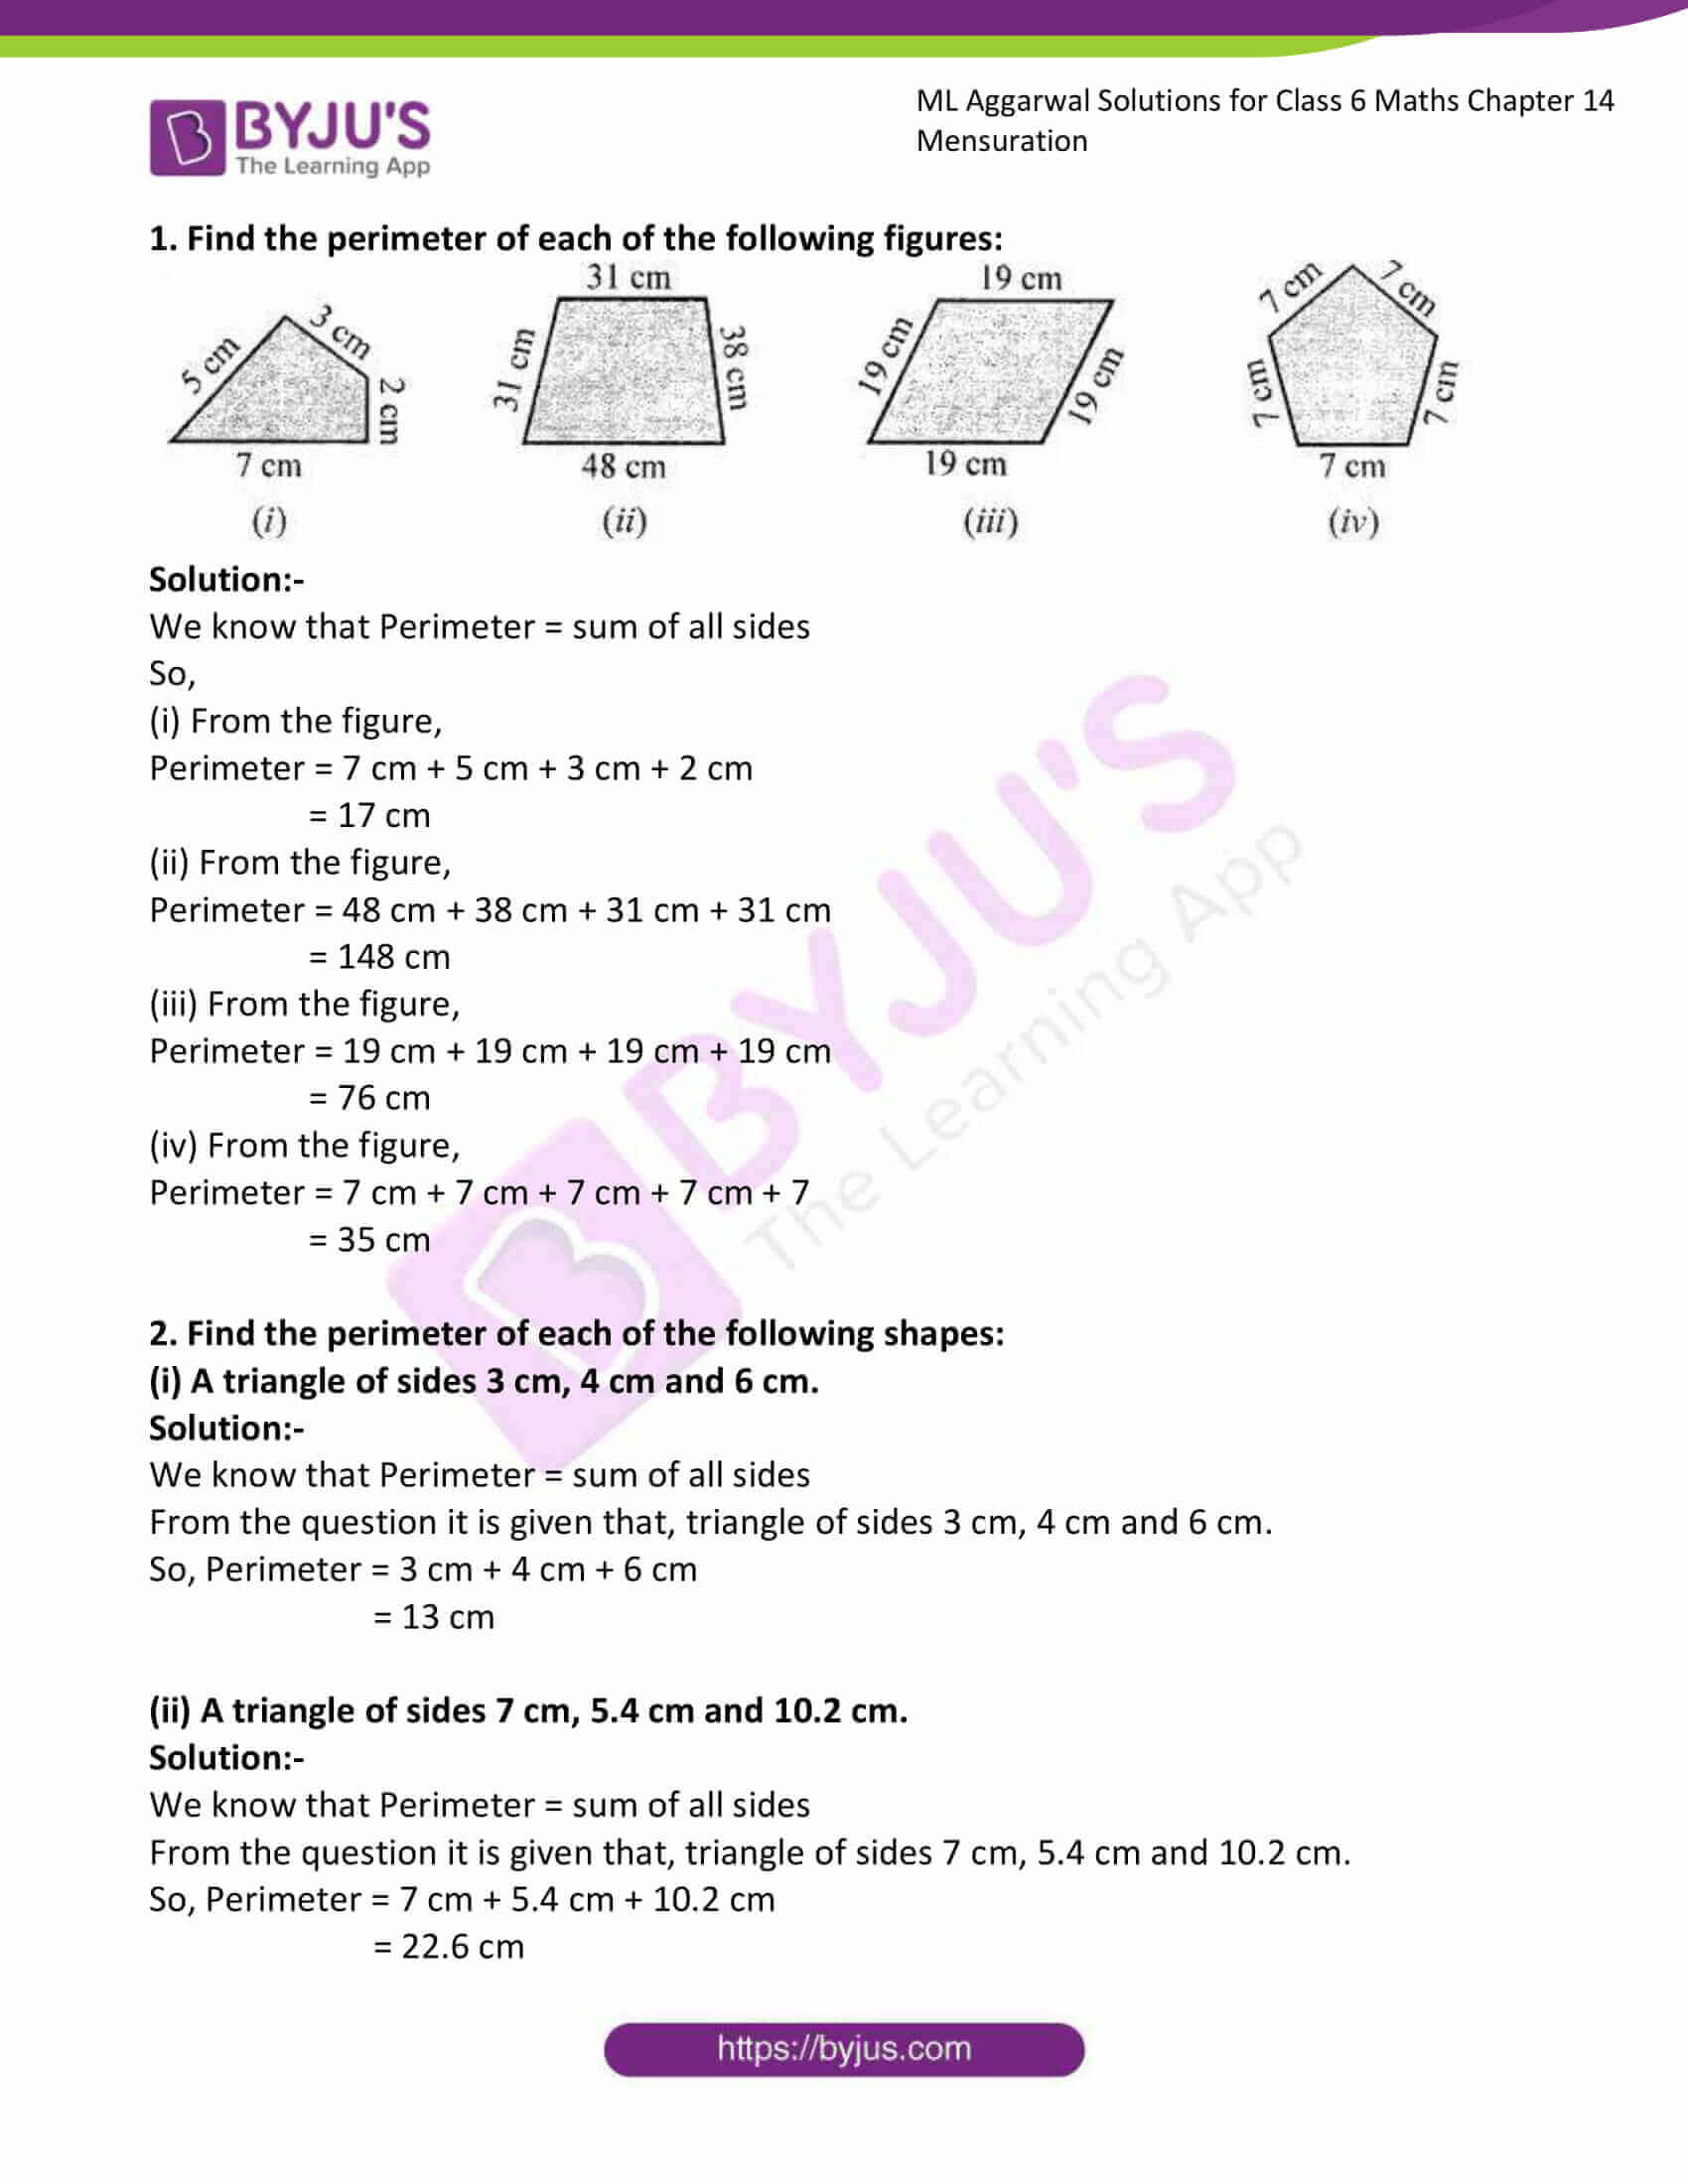 ml aggarwal solutions for class 6 maths chapter 14 1